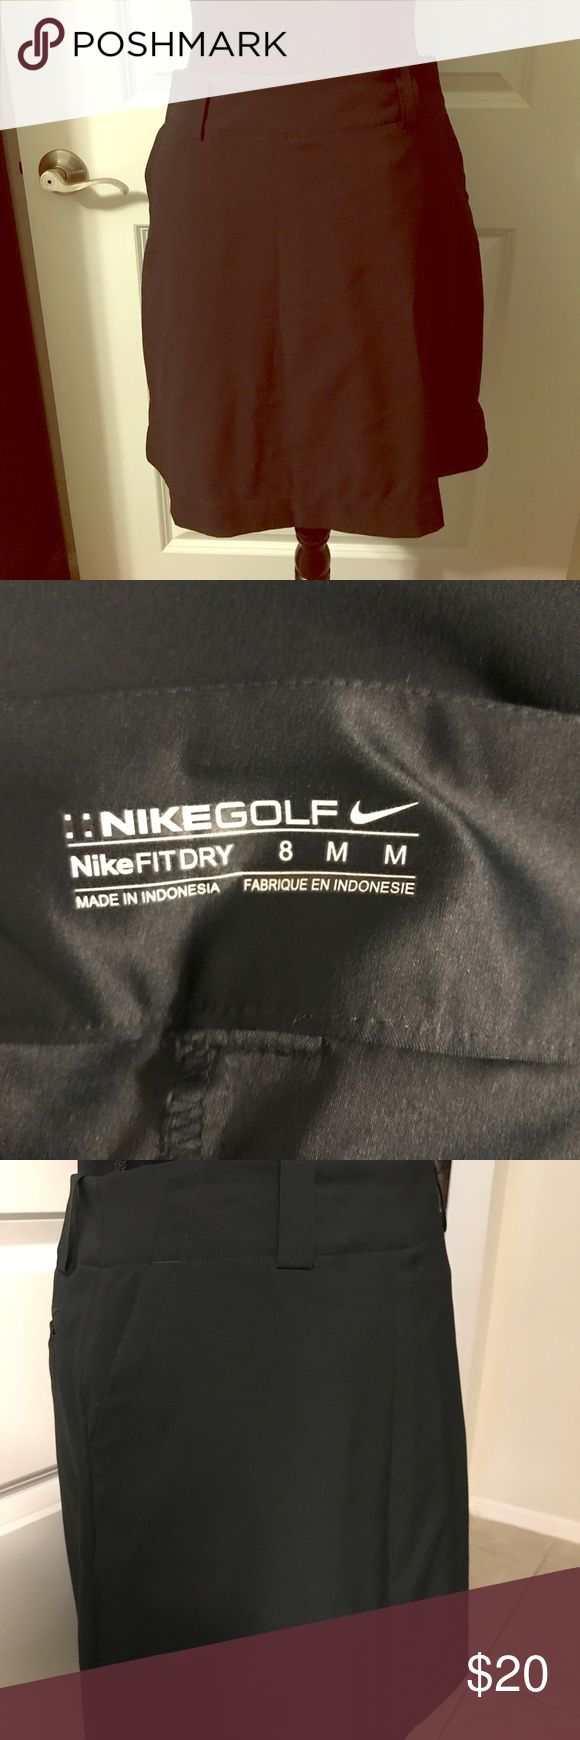 """Nike Fit Golf skort Sz 8. NWOT Nike Fit Dry skort (skirt with shorts under) Sz 8. Black with belt loops. NWOT. One of my favorite """"look cute and be comfy"""" tricks is to wear active wear as regular clothing. Pair with booties and a body suit for fall and then add layers for winter! Nike Skirts"""